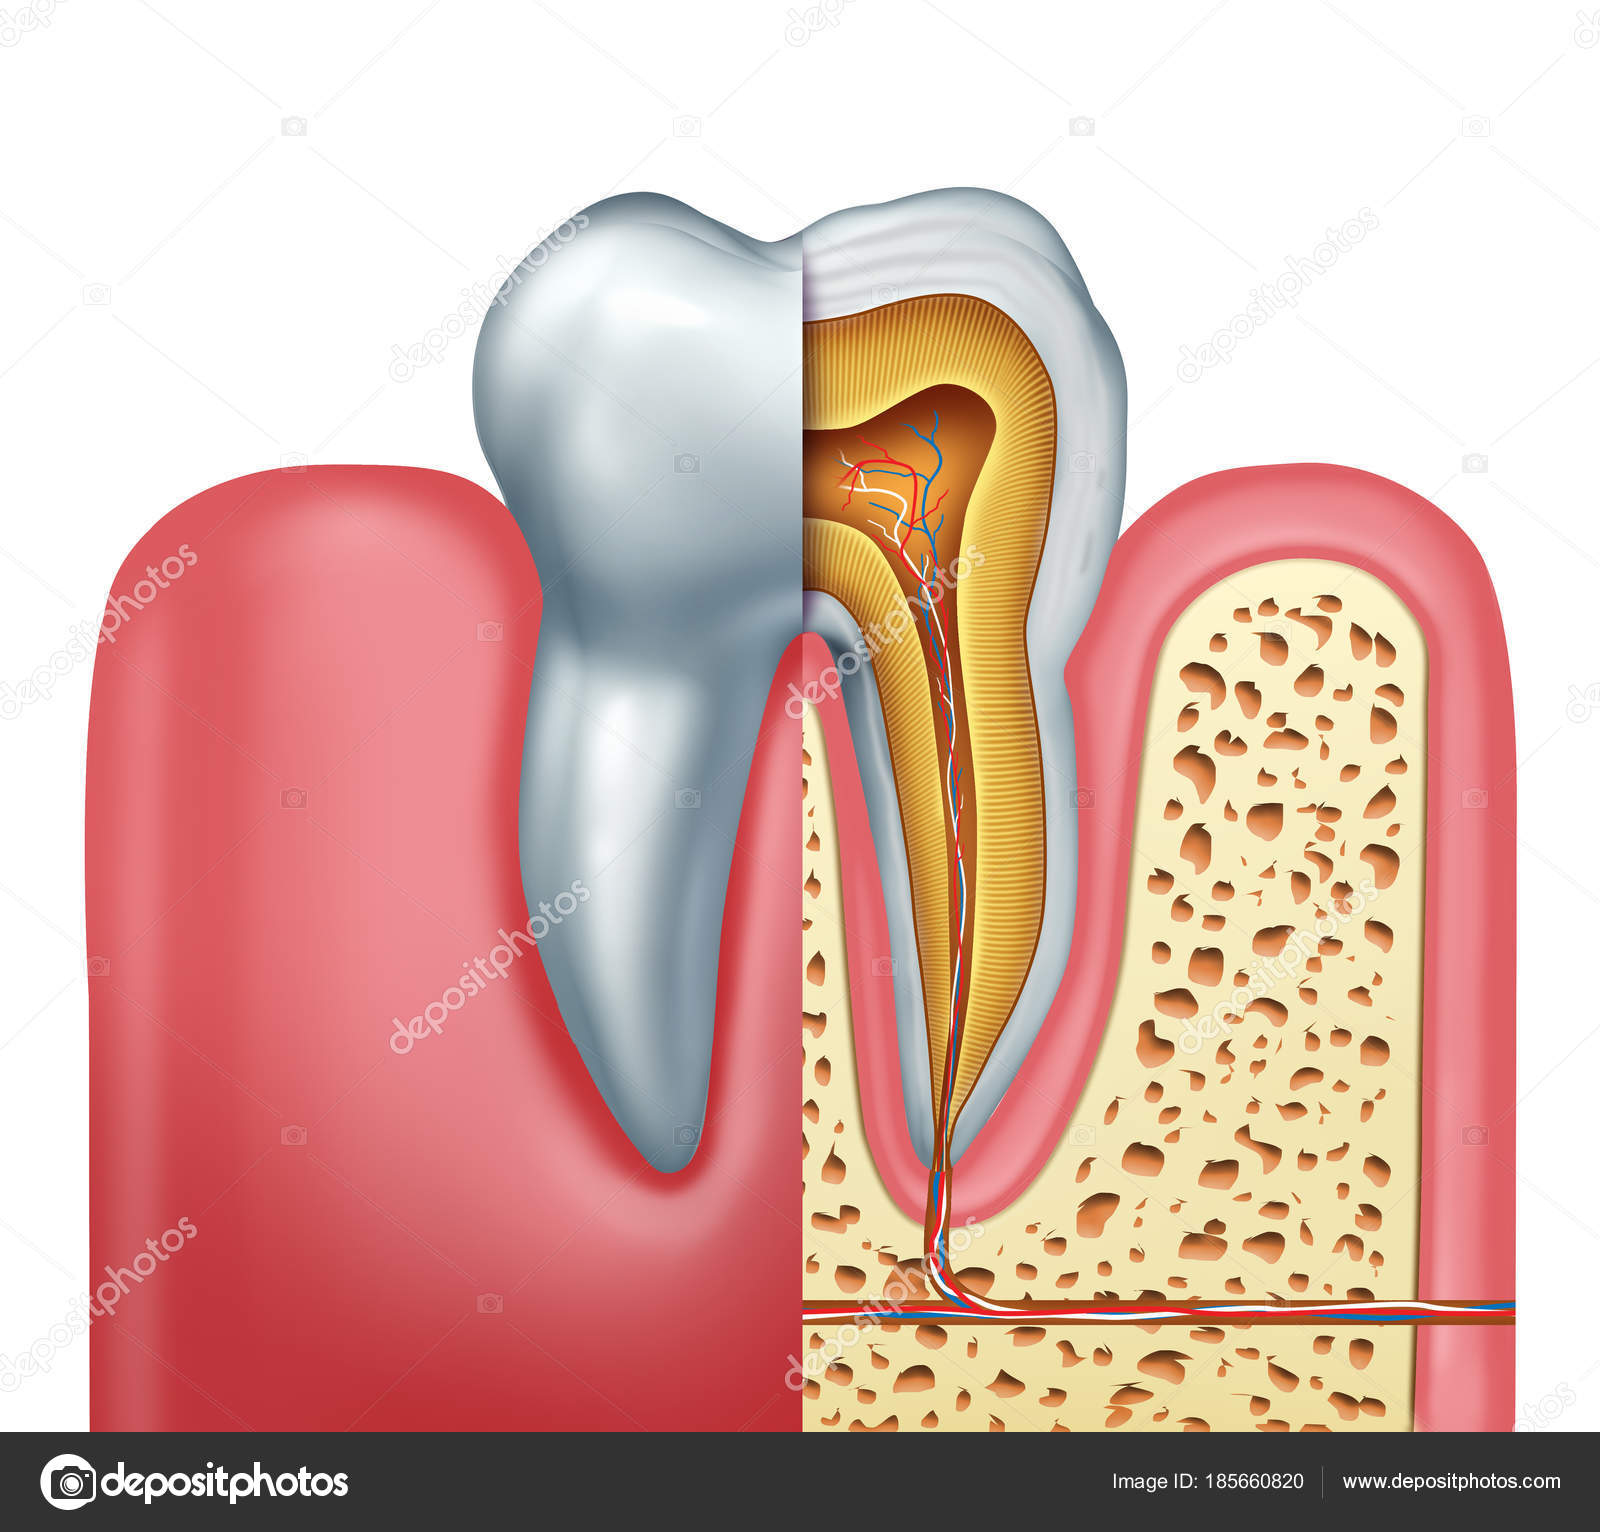 Human Tooth Anatomy Concept — Stock Photo © lightsource #185660820